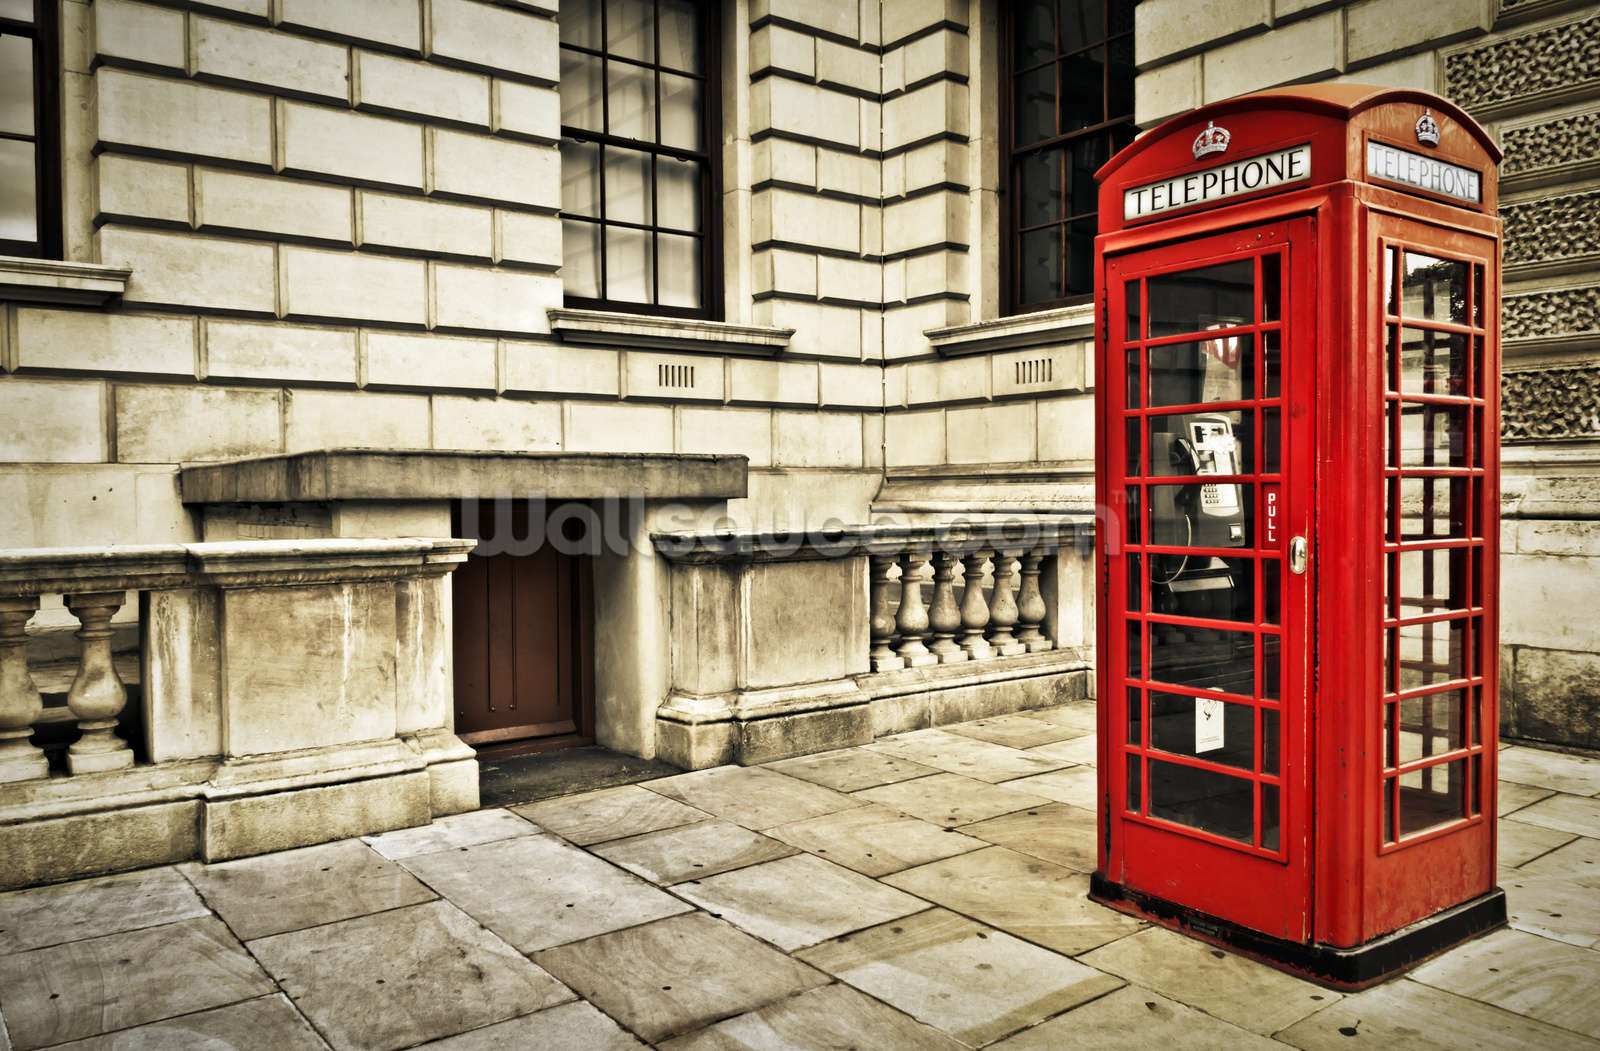 Telephone box london wallpaper wall mural wallsauce australia save your design for later amipublicfo Choice Image